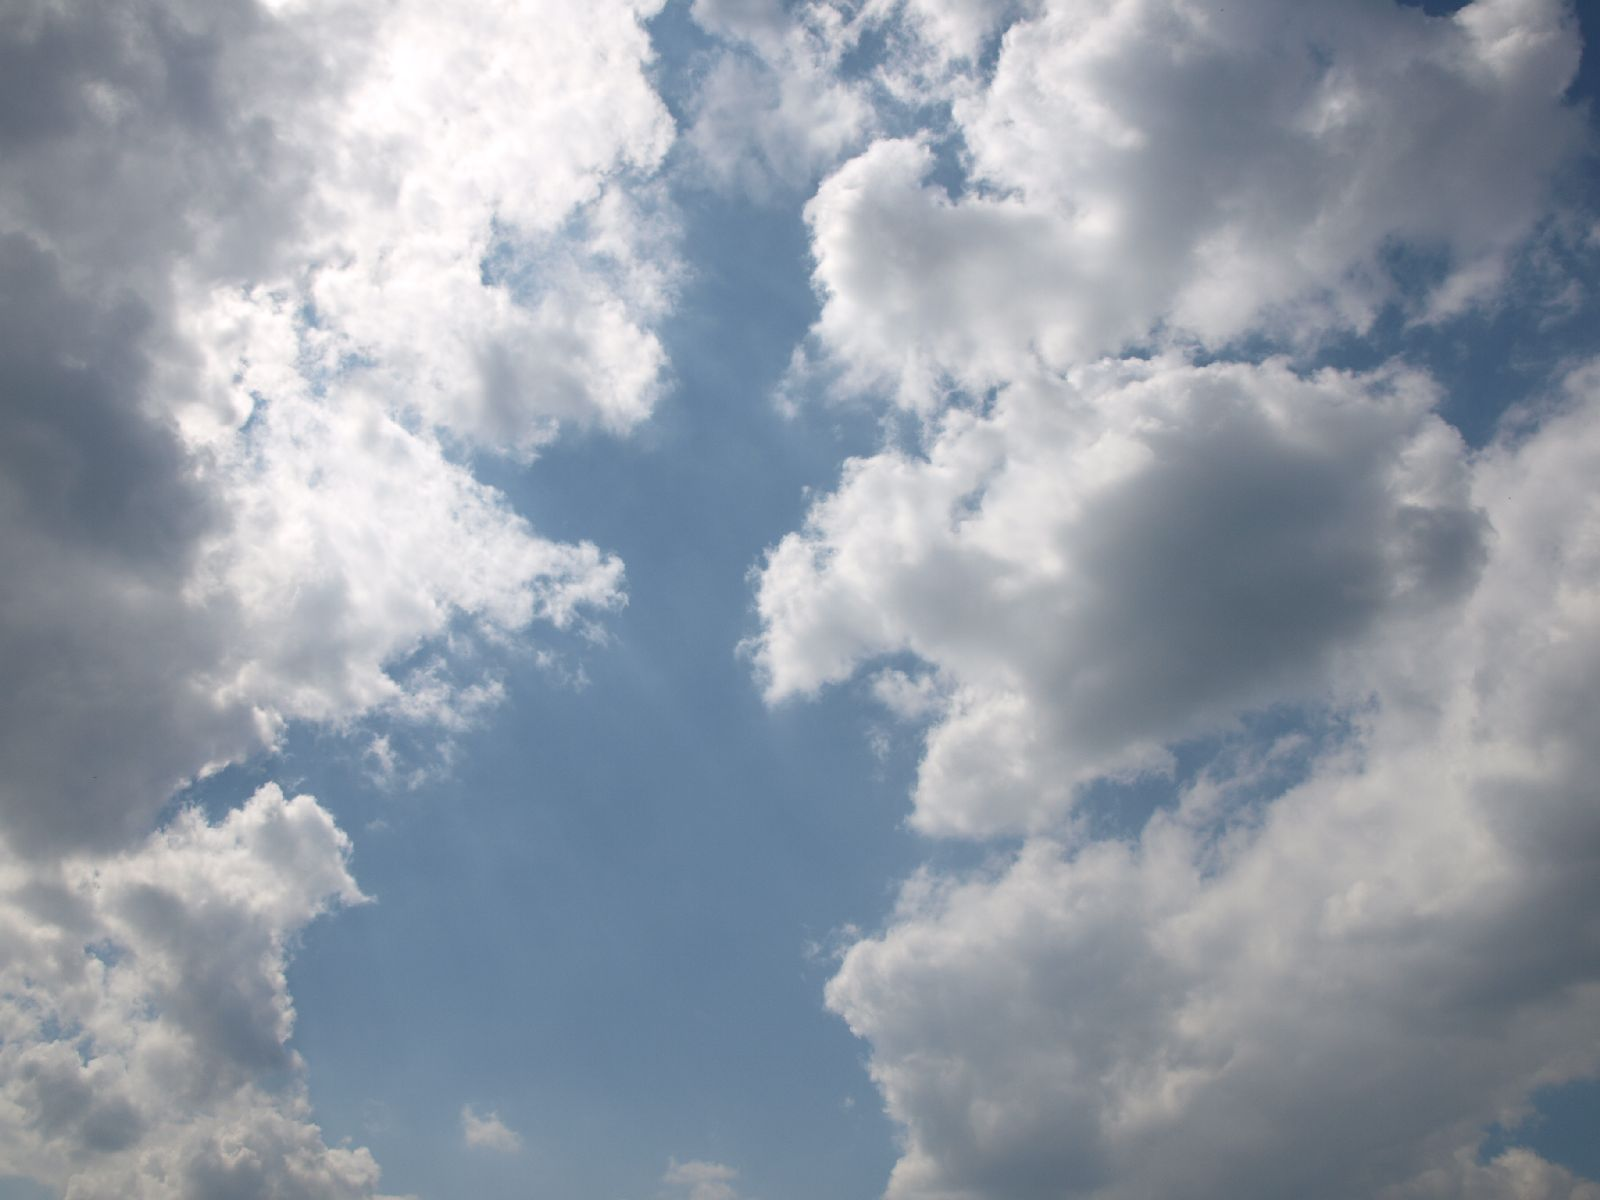 Sky_Clouds_Photo_Texture_A_P5232922